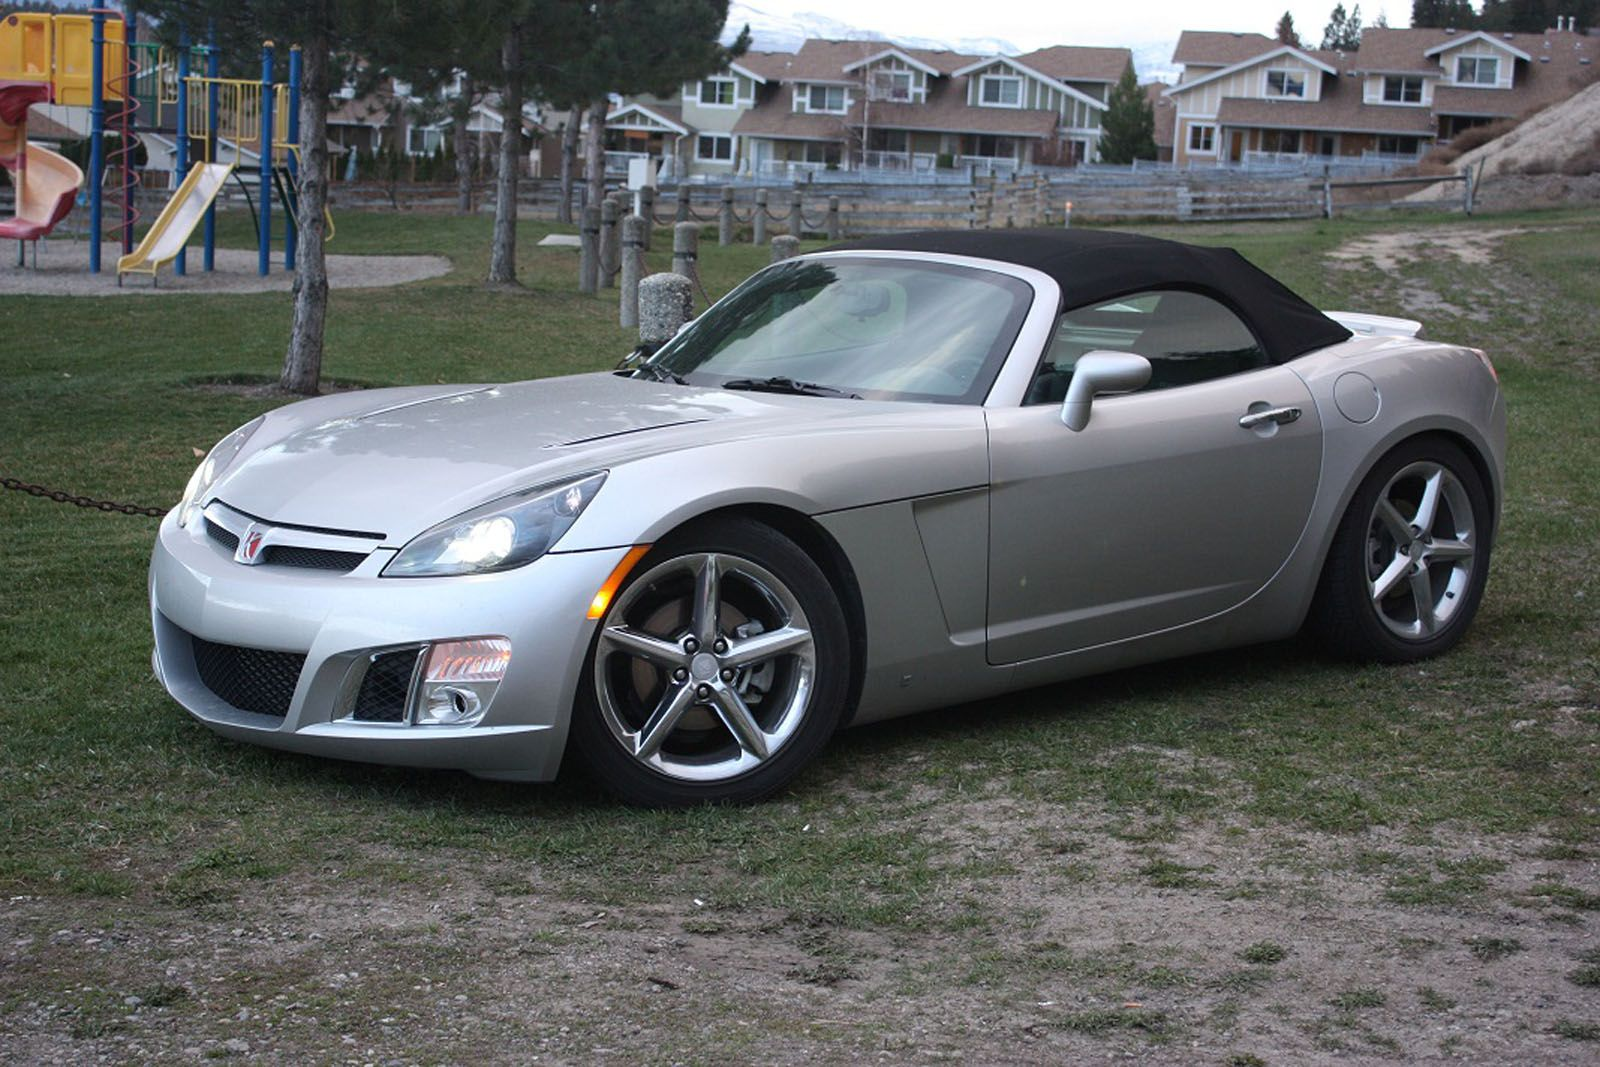 Custom modded 300 bhp 2008 saturn sky redline for sale or trade in british columbia buy this silver convertible